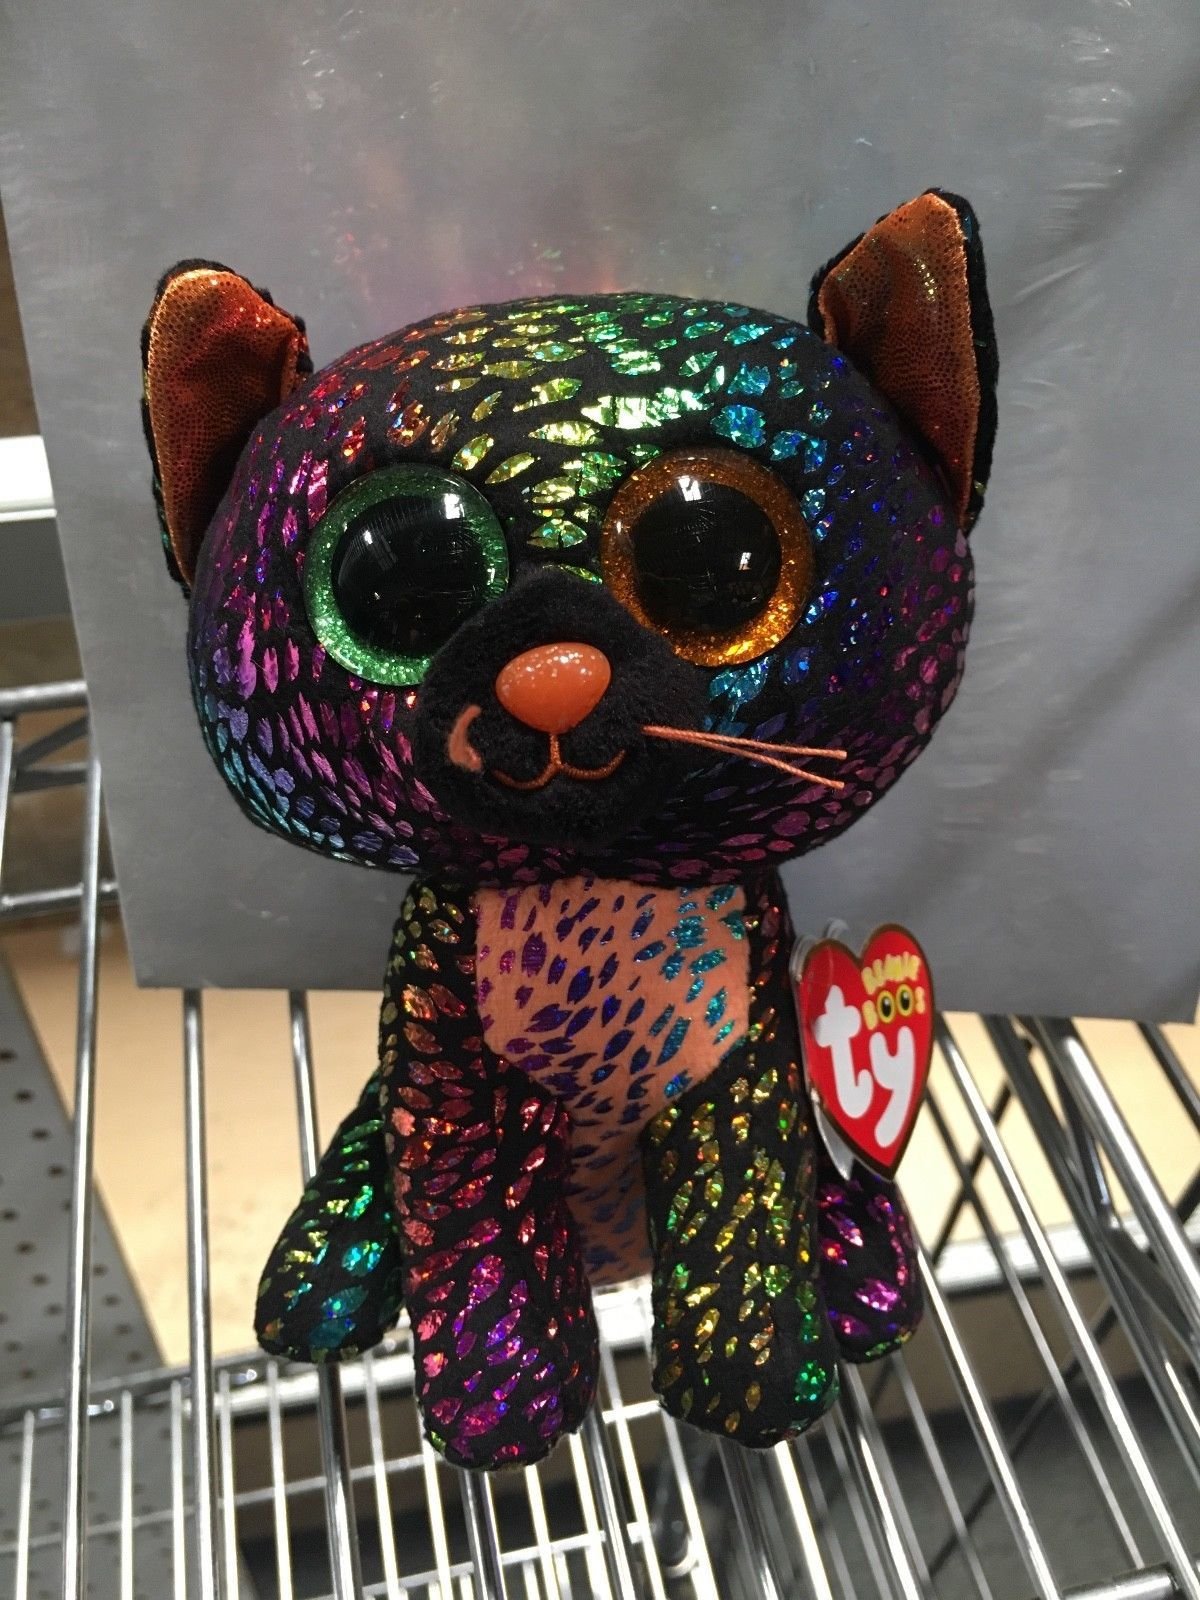 16db9a1abb6 Beanbag Plush 49019  Ty Beanie Boos Spellbound The Cat-New Claires Halloween  Exclusive 6 Mwmts -  BUY IT NOW ONLY   13.9 on eBay!